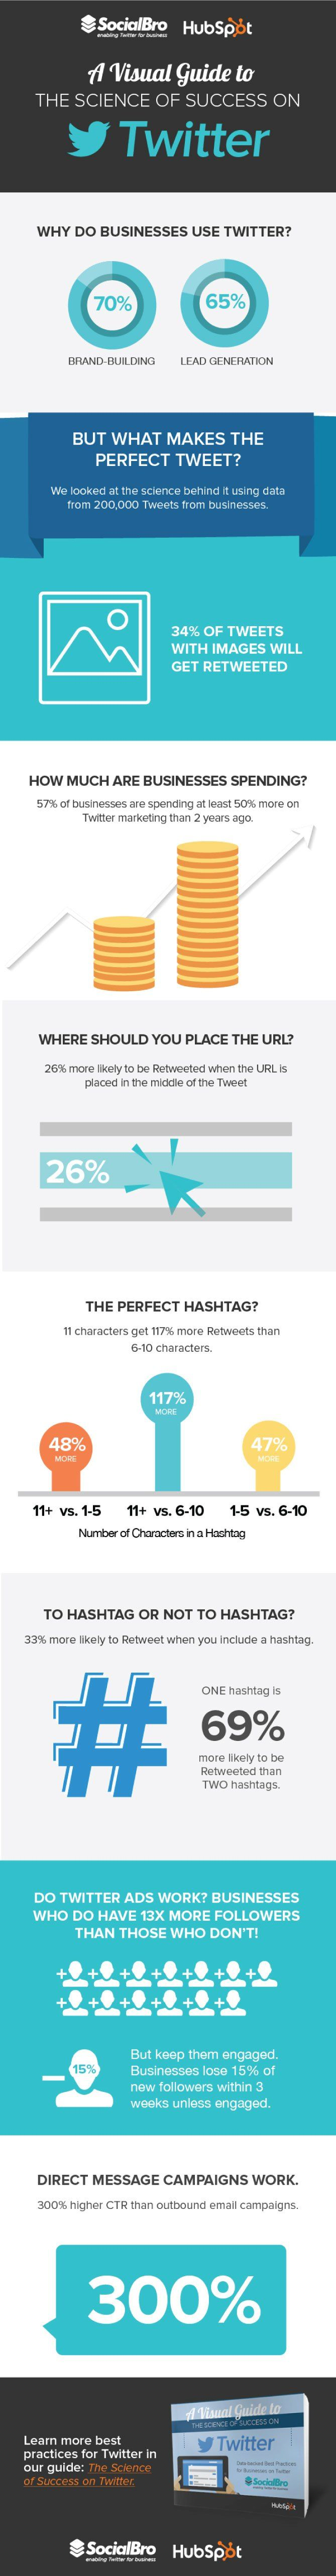 The Science of Twitter Success [Infographic]